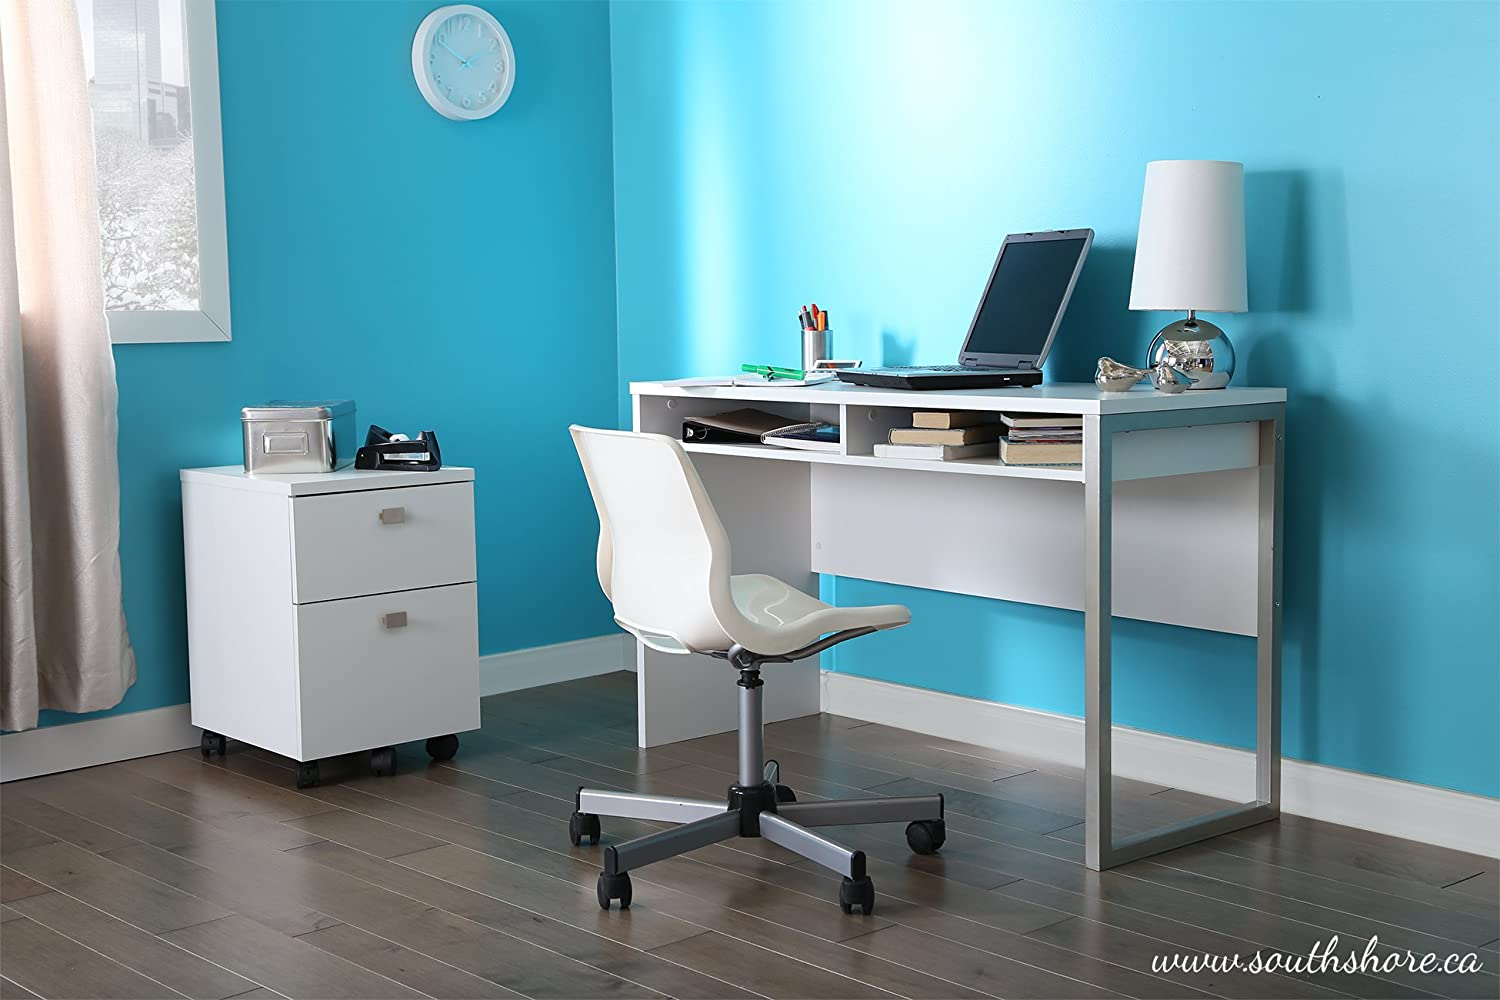 white chair furniture desk riverside cfm coventry office scale product hayneedle riversidecoventrydeskchair